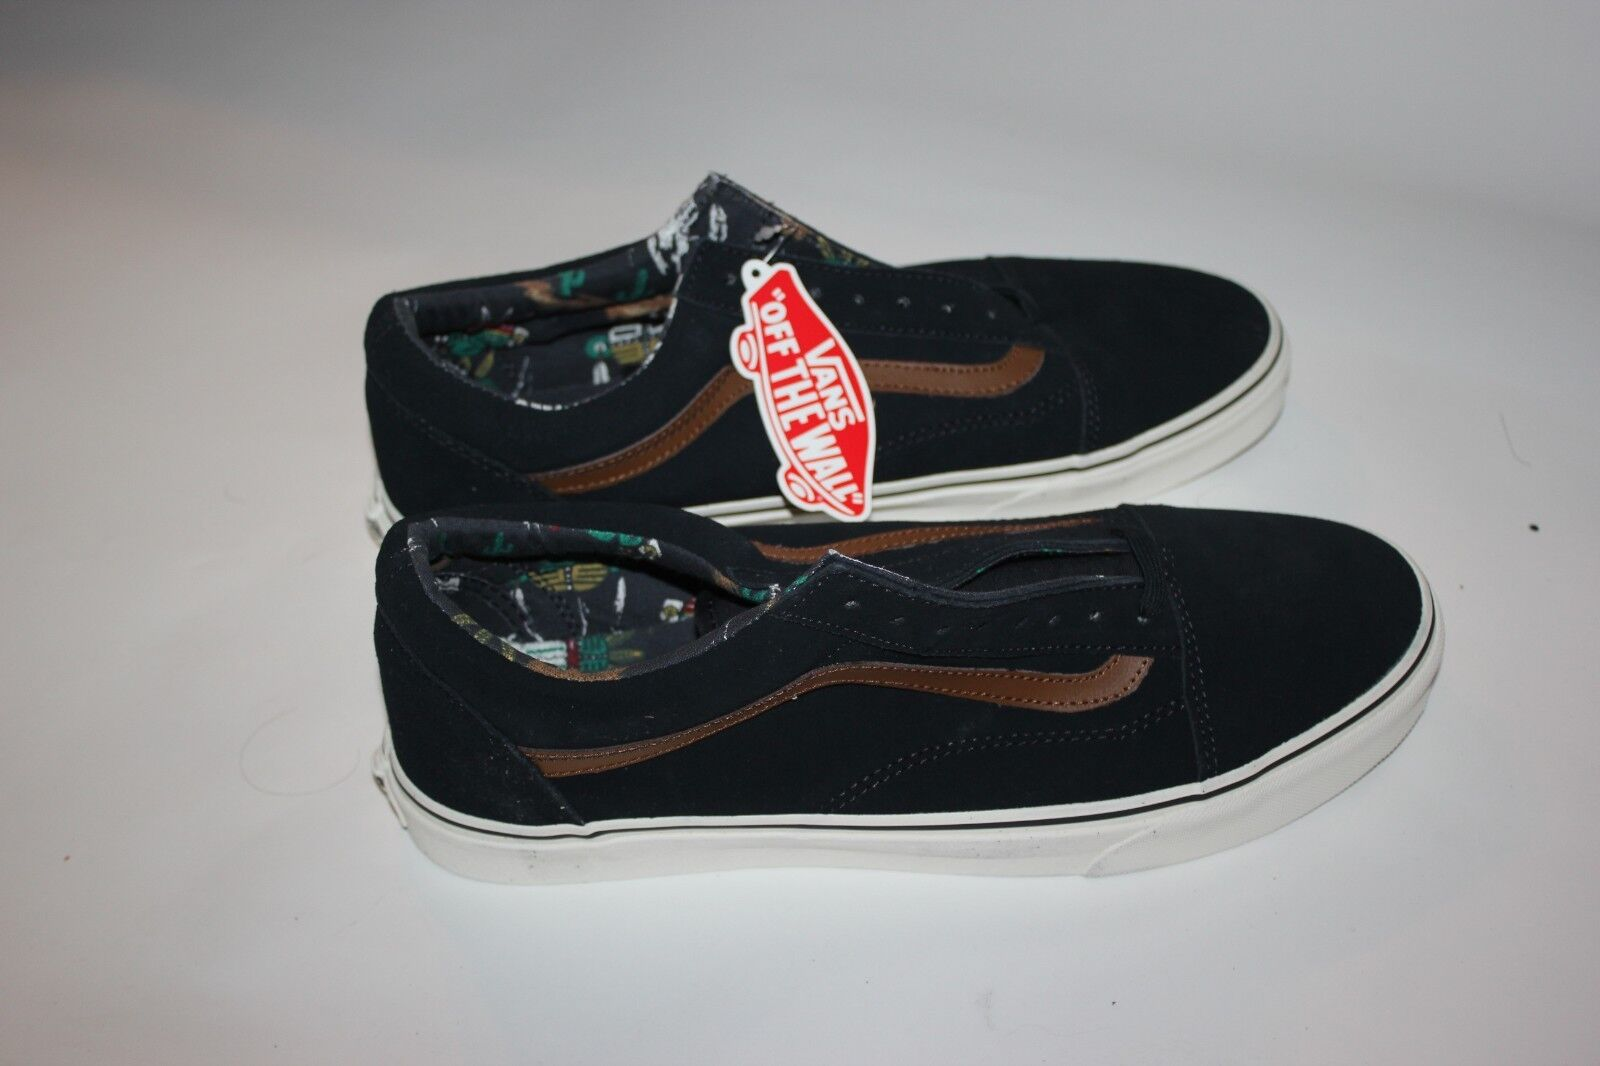 a69b2cad Vans Old Skool Desert Tribe Tribe Tribe Suede bluee shoes Mens 11.5 ...